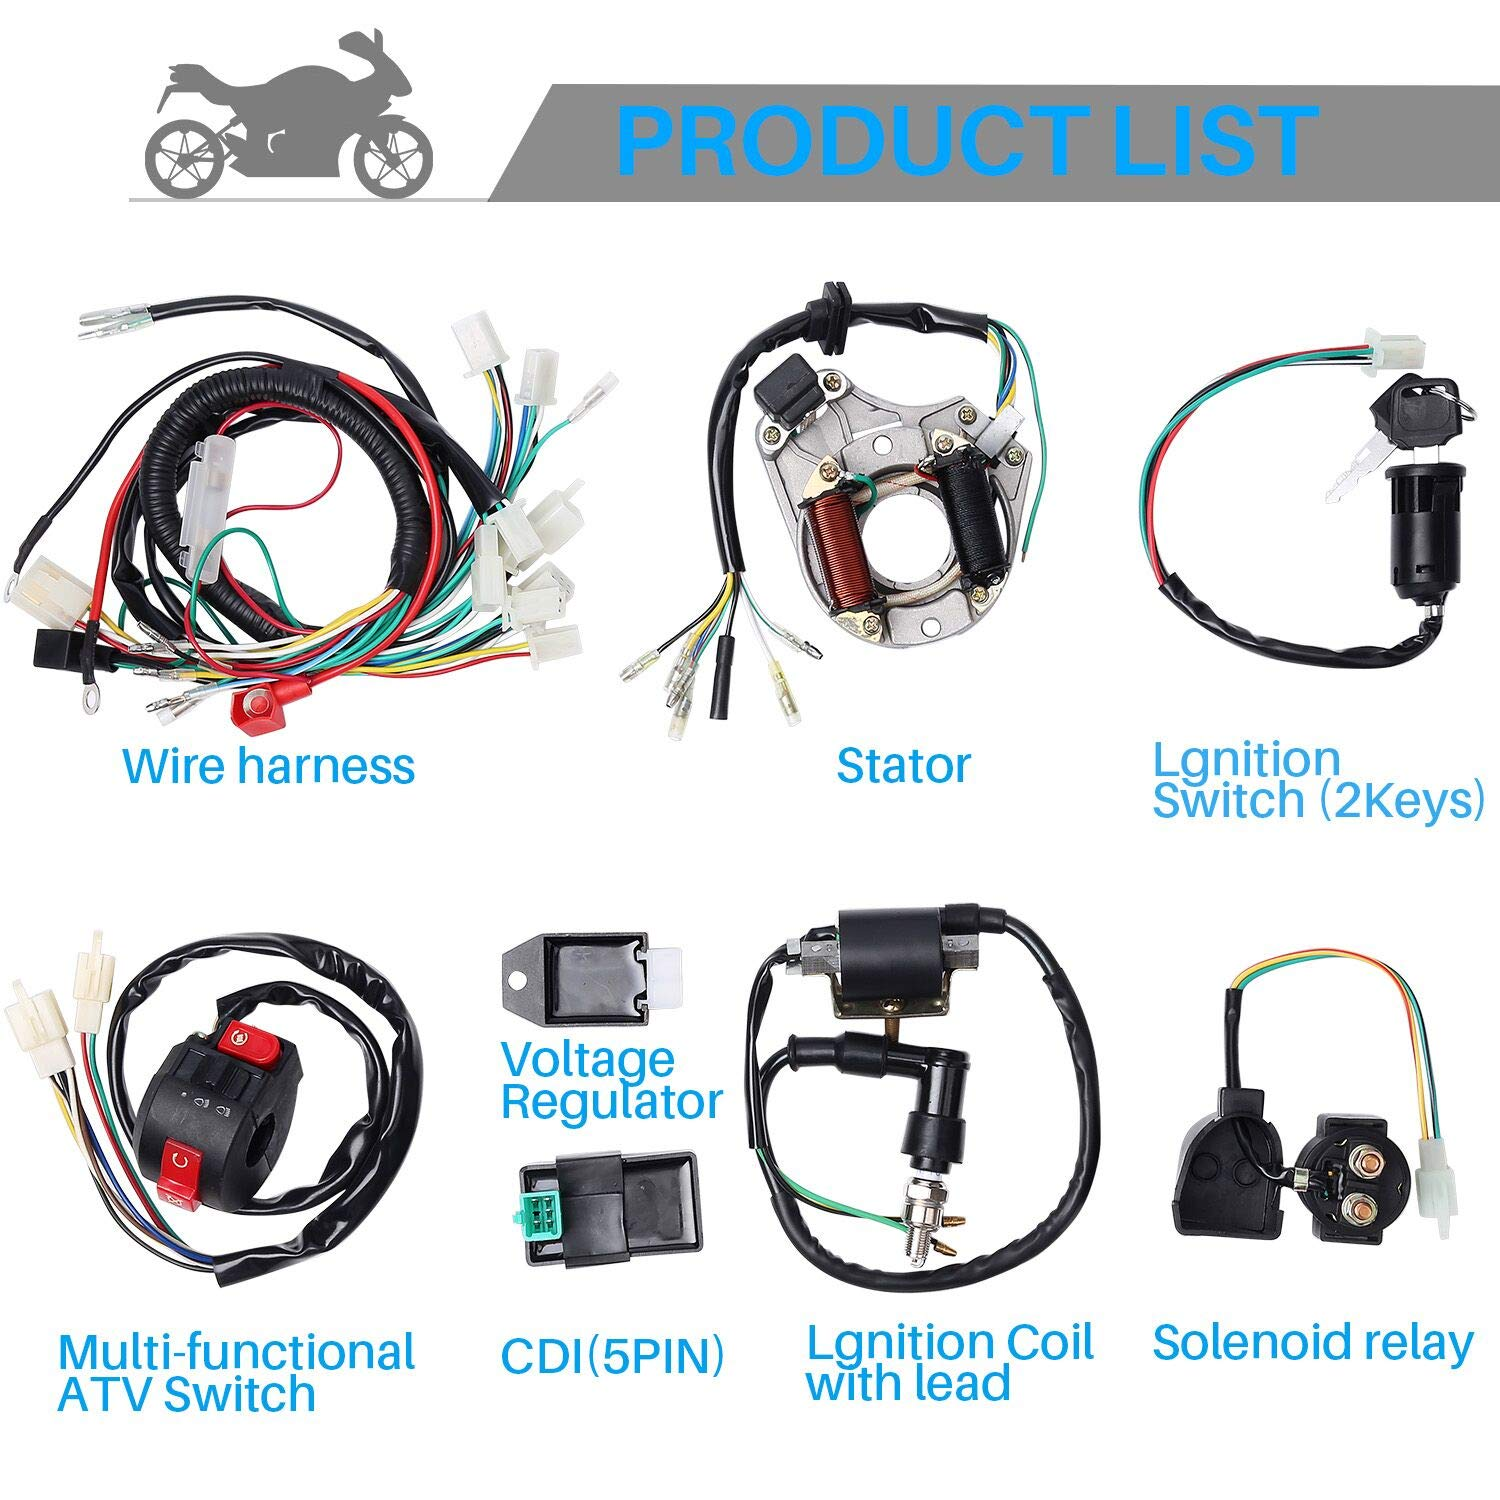 Cisno Complete Electrics Stator Coil Cdi Wiring Harness Kazuma Diagram For 4 Stroke Atv Klx 50cc 70cc 110cc 125cc Automotive